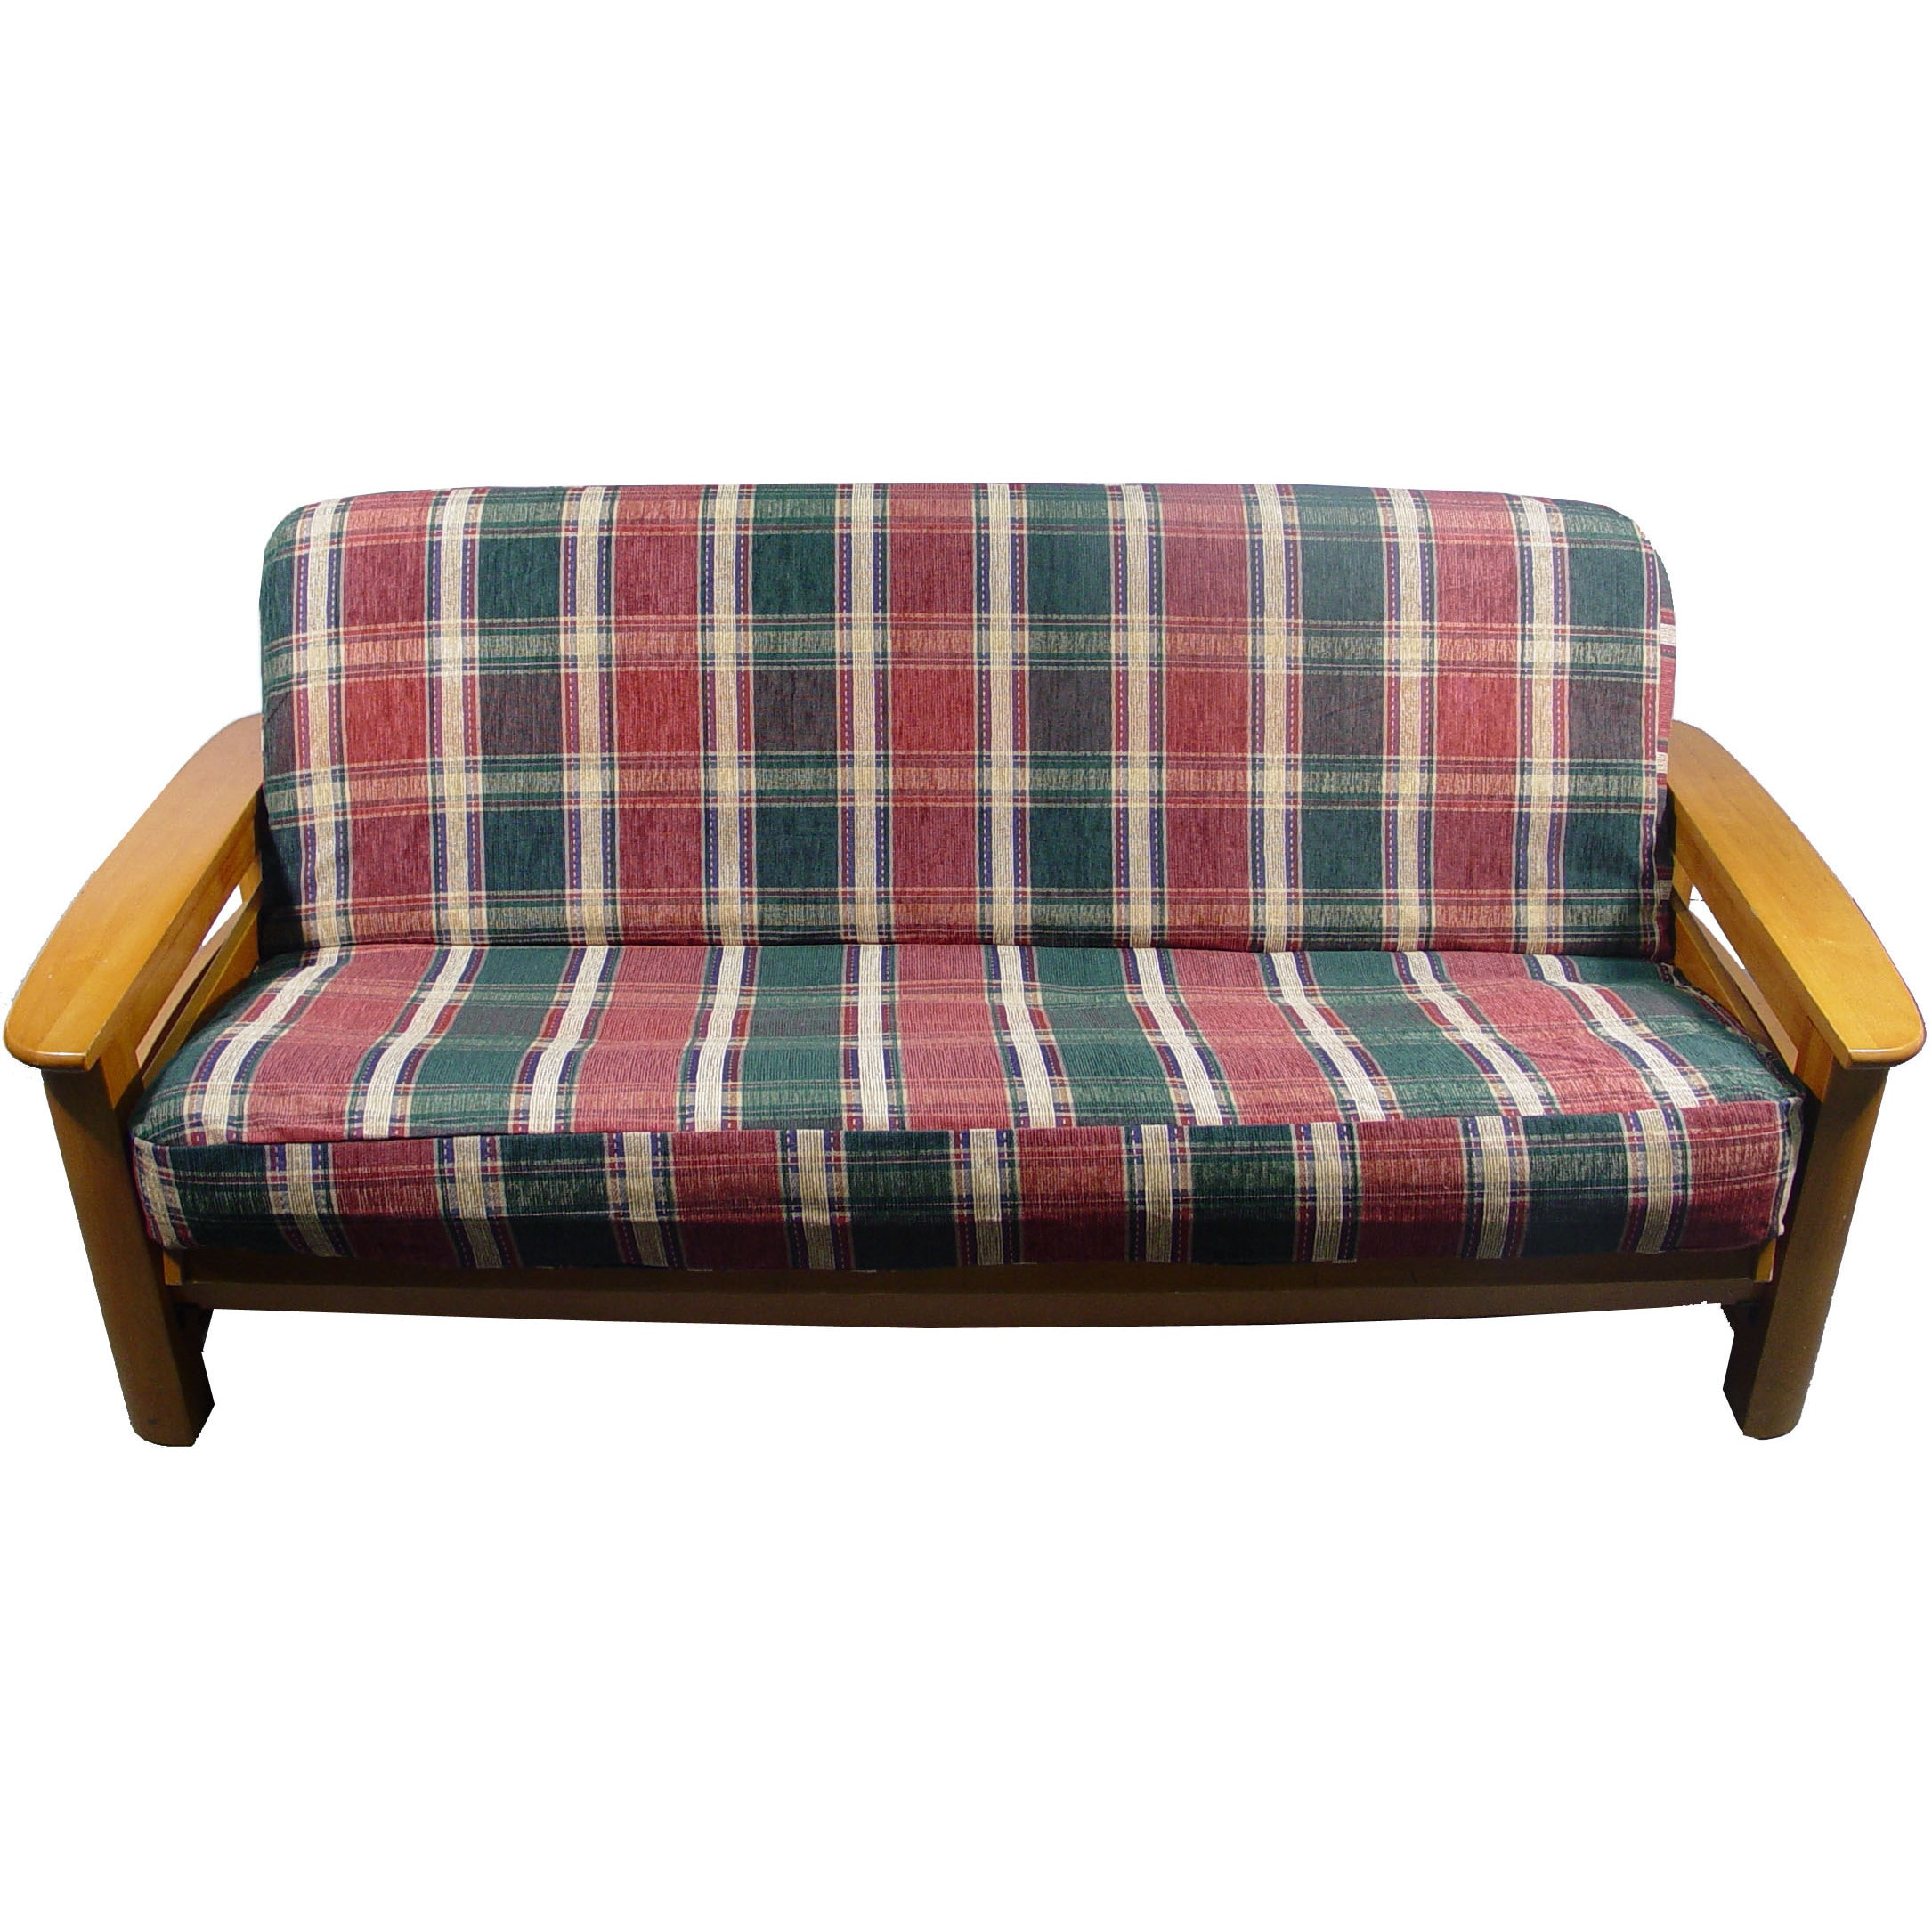 Lifestyle Covers New England Plaid Full Size Futon Cover at Sears.com